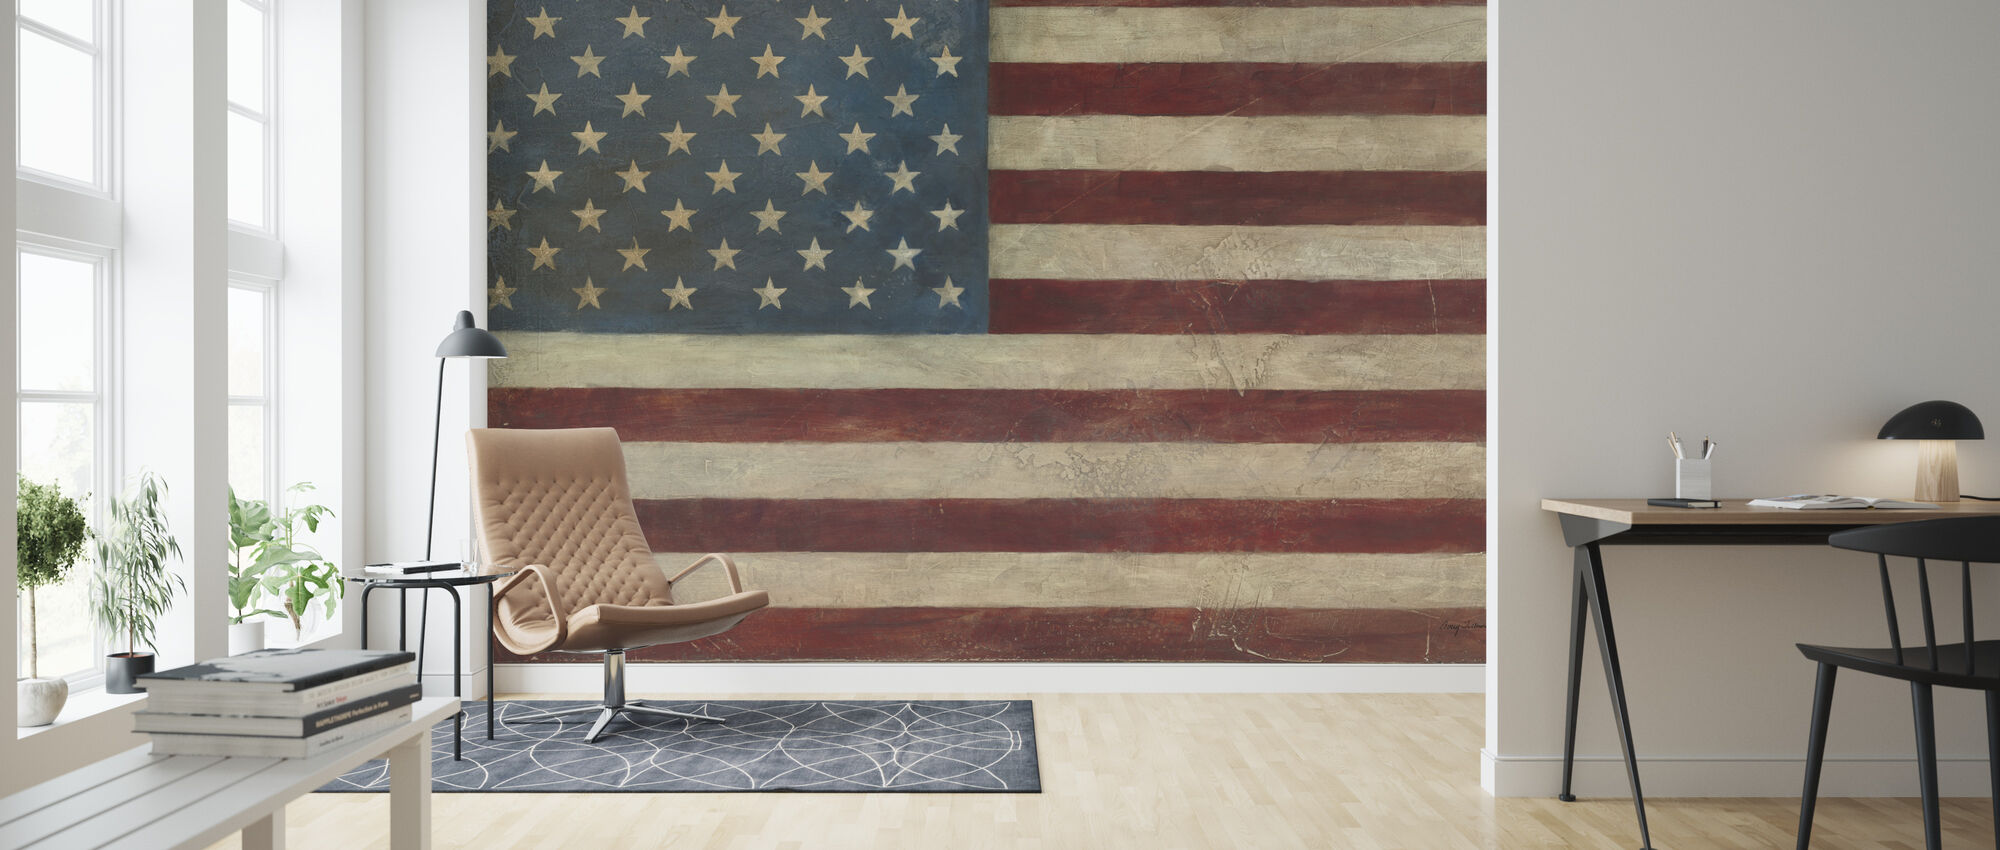 Avery Tillmon - American Flag - Wallpaper - Living Room